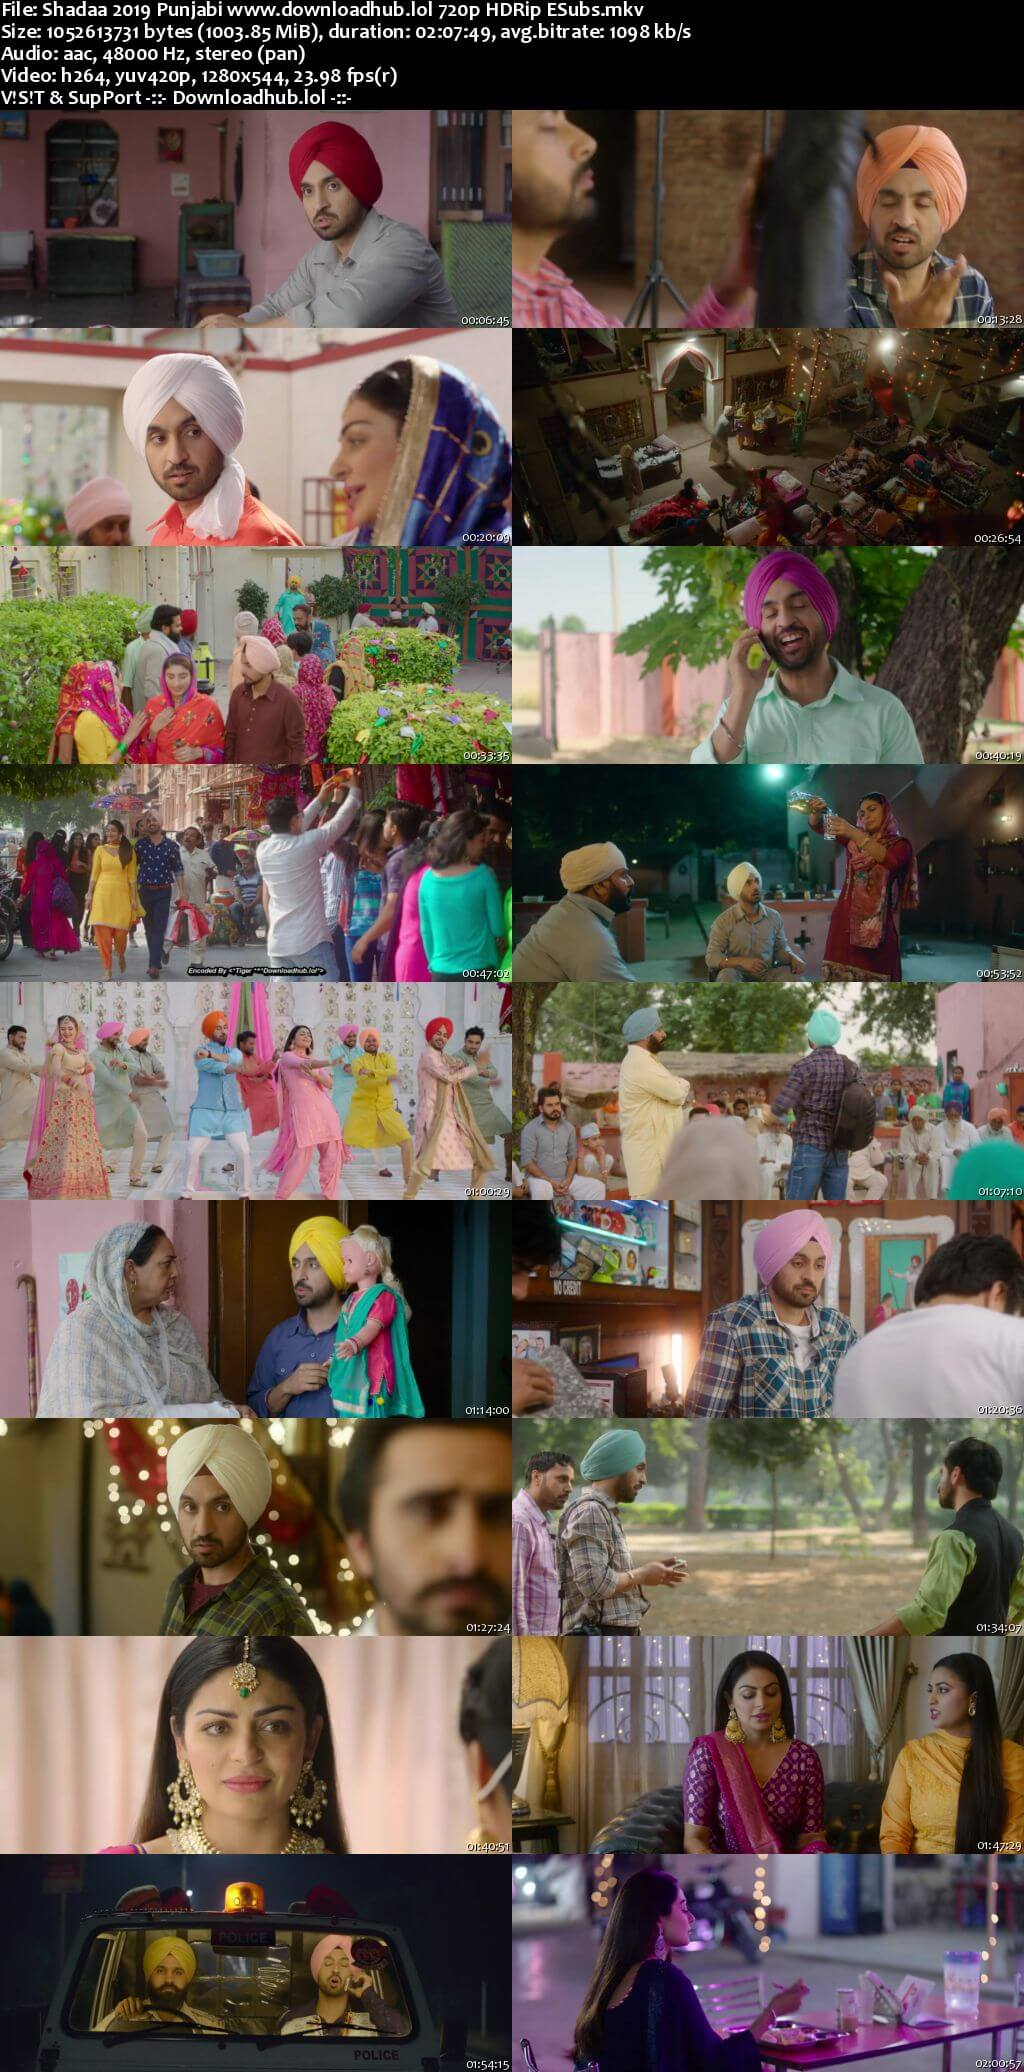 Shadaa 2019 Punjabi 720p HDRip ESubs